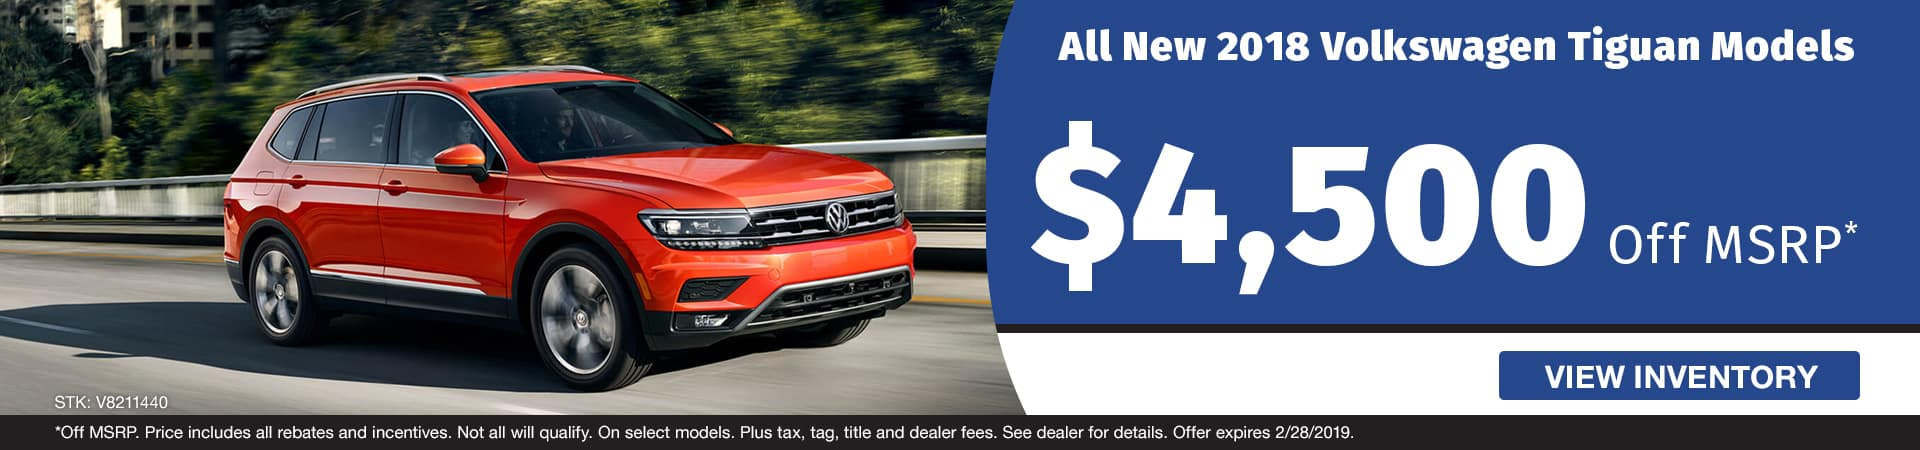 Save $4,500 off a new 2018 Volkswagen Tiguan model in Murfreesboro TN